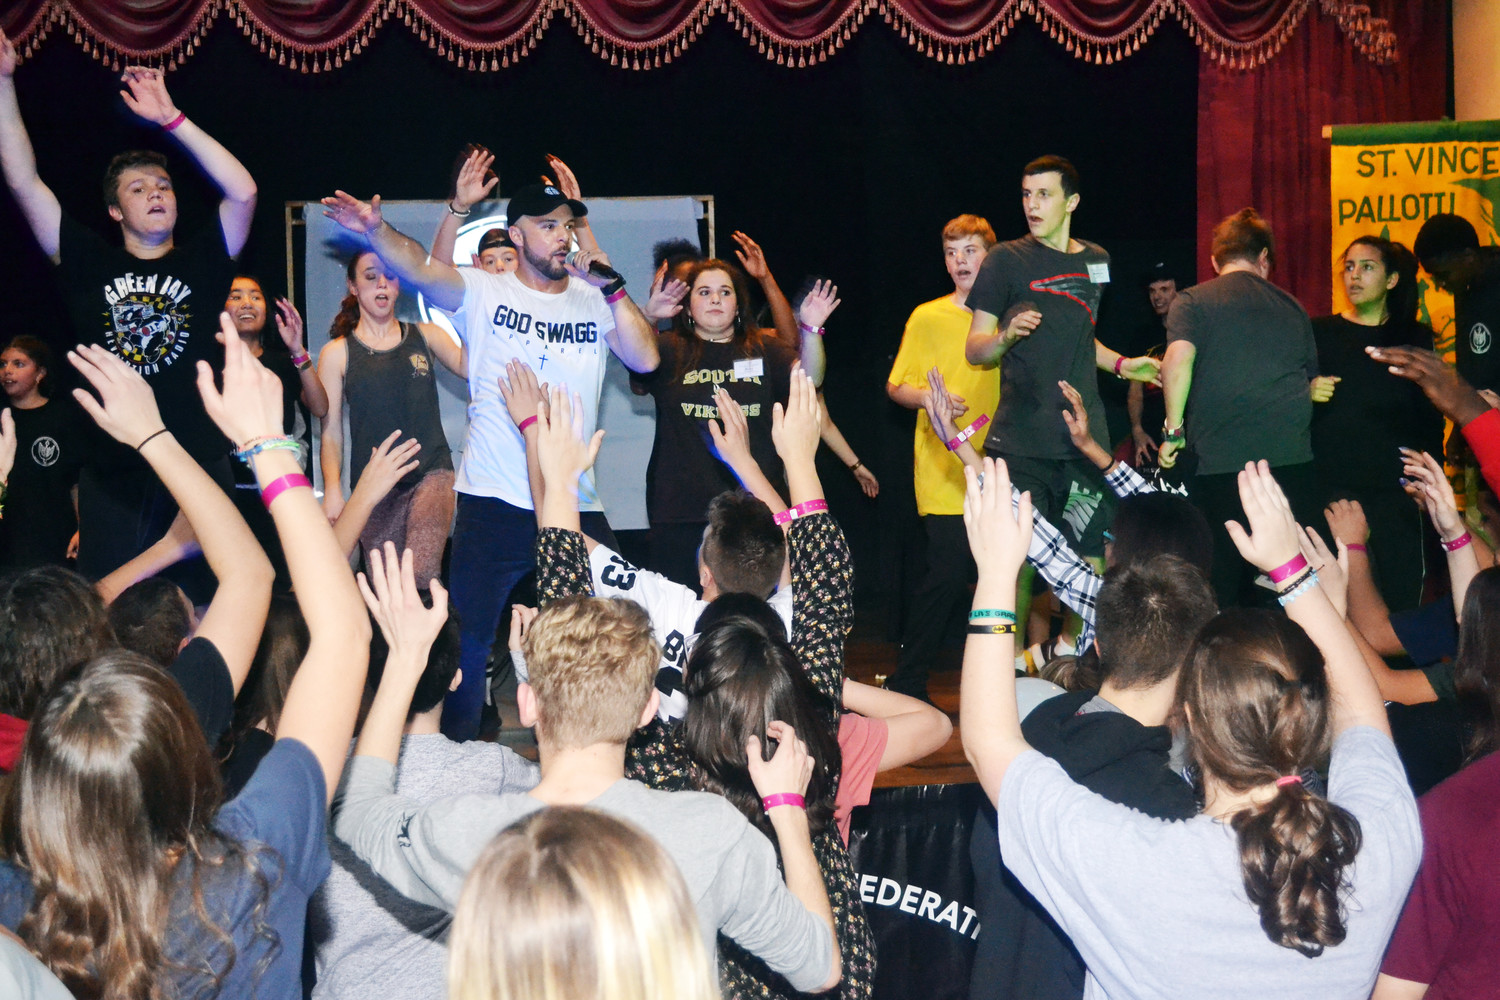 Teens dance at a performance by Joe Melendrez of Joe Melendrez Ministries in California during the Pallottine Teenage Federation Conference at Honor's Haven Resort & Spa in Ellenville Dec. 2.